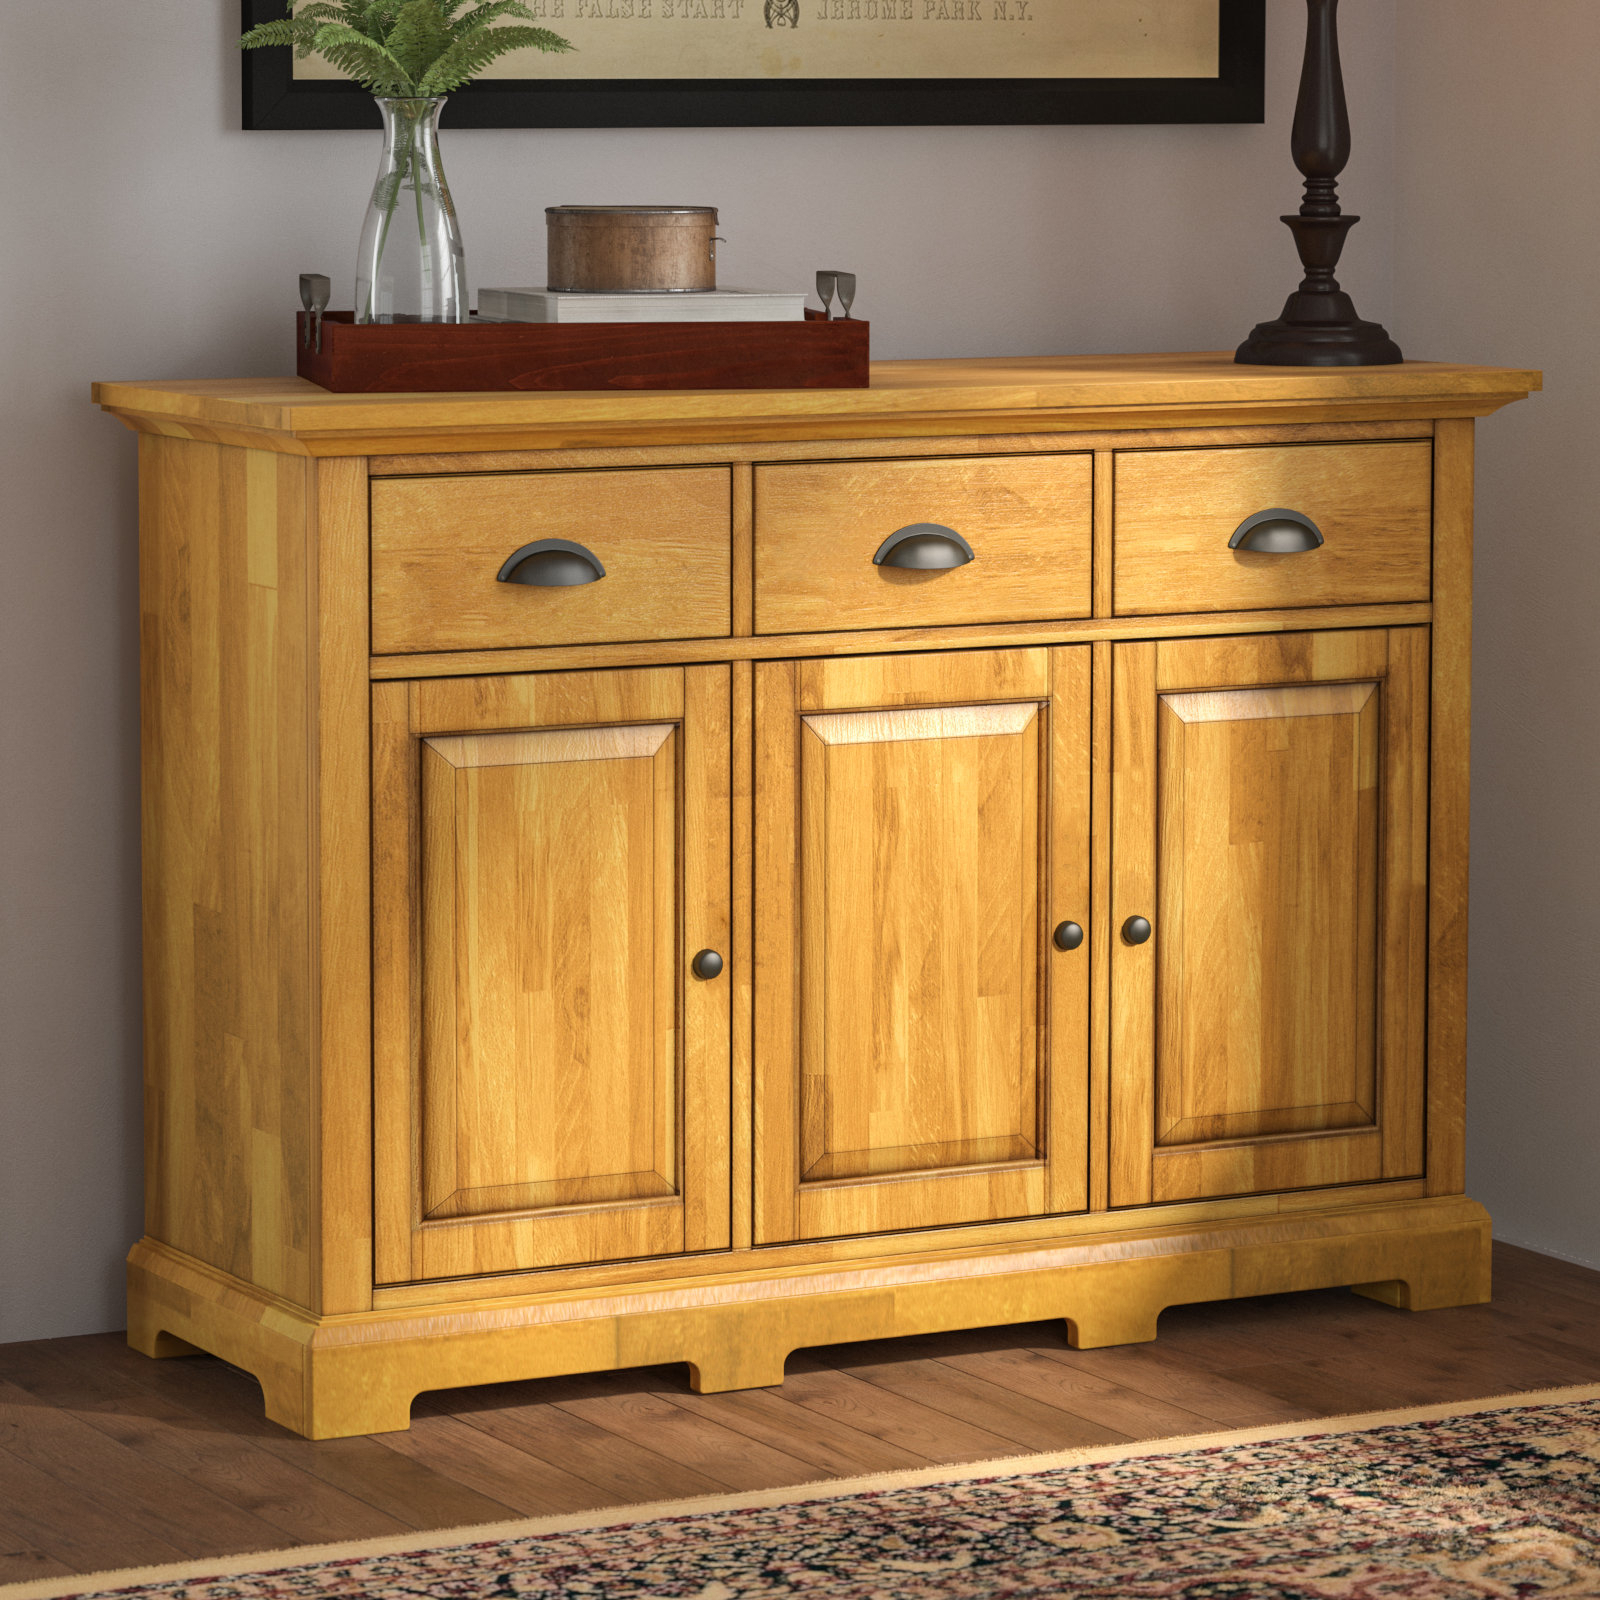 Farmhouse & Rustic Three Posts Sideboards & Buffets | Birch Lane In Stillwater Sideboards (View 8 of 30)